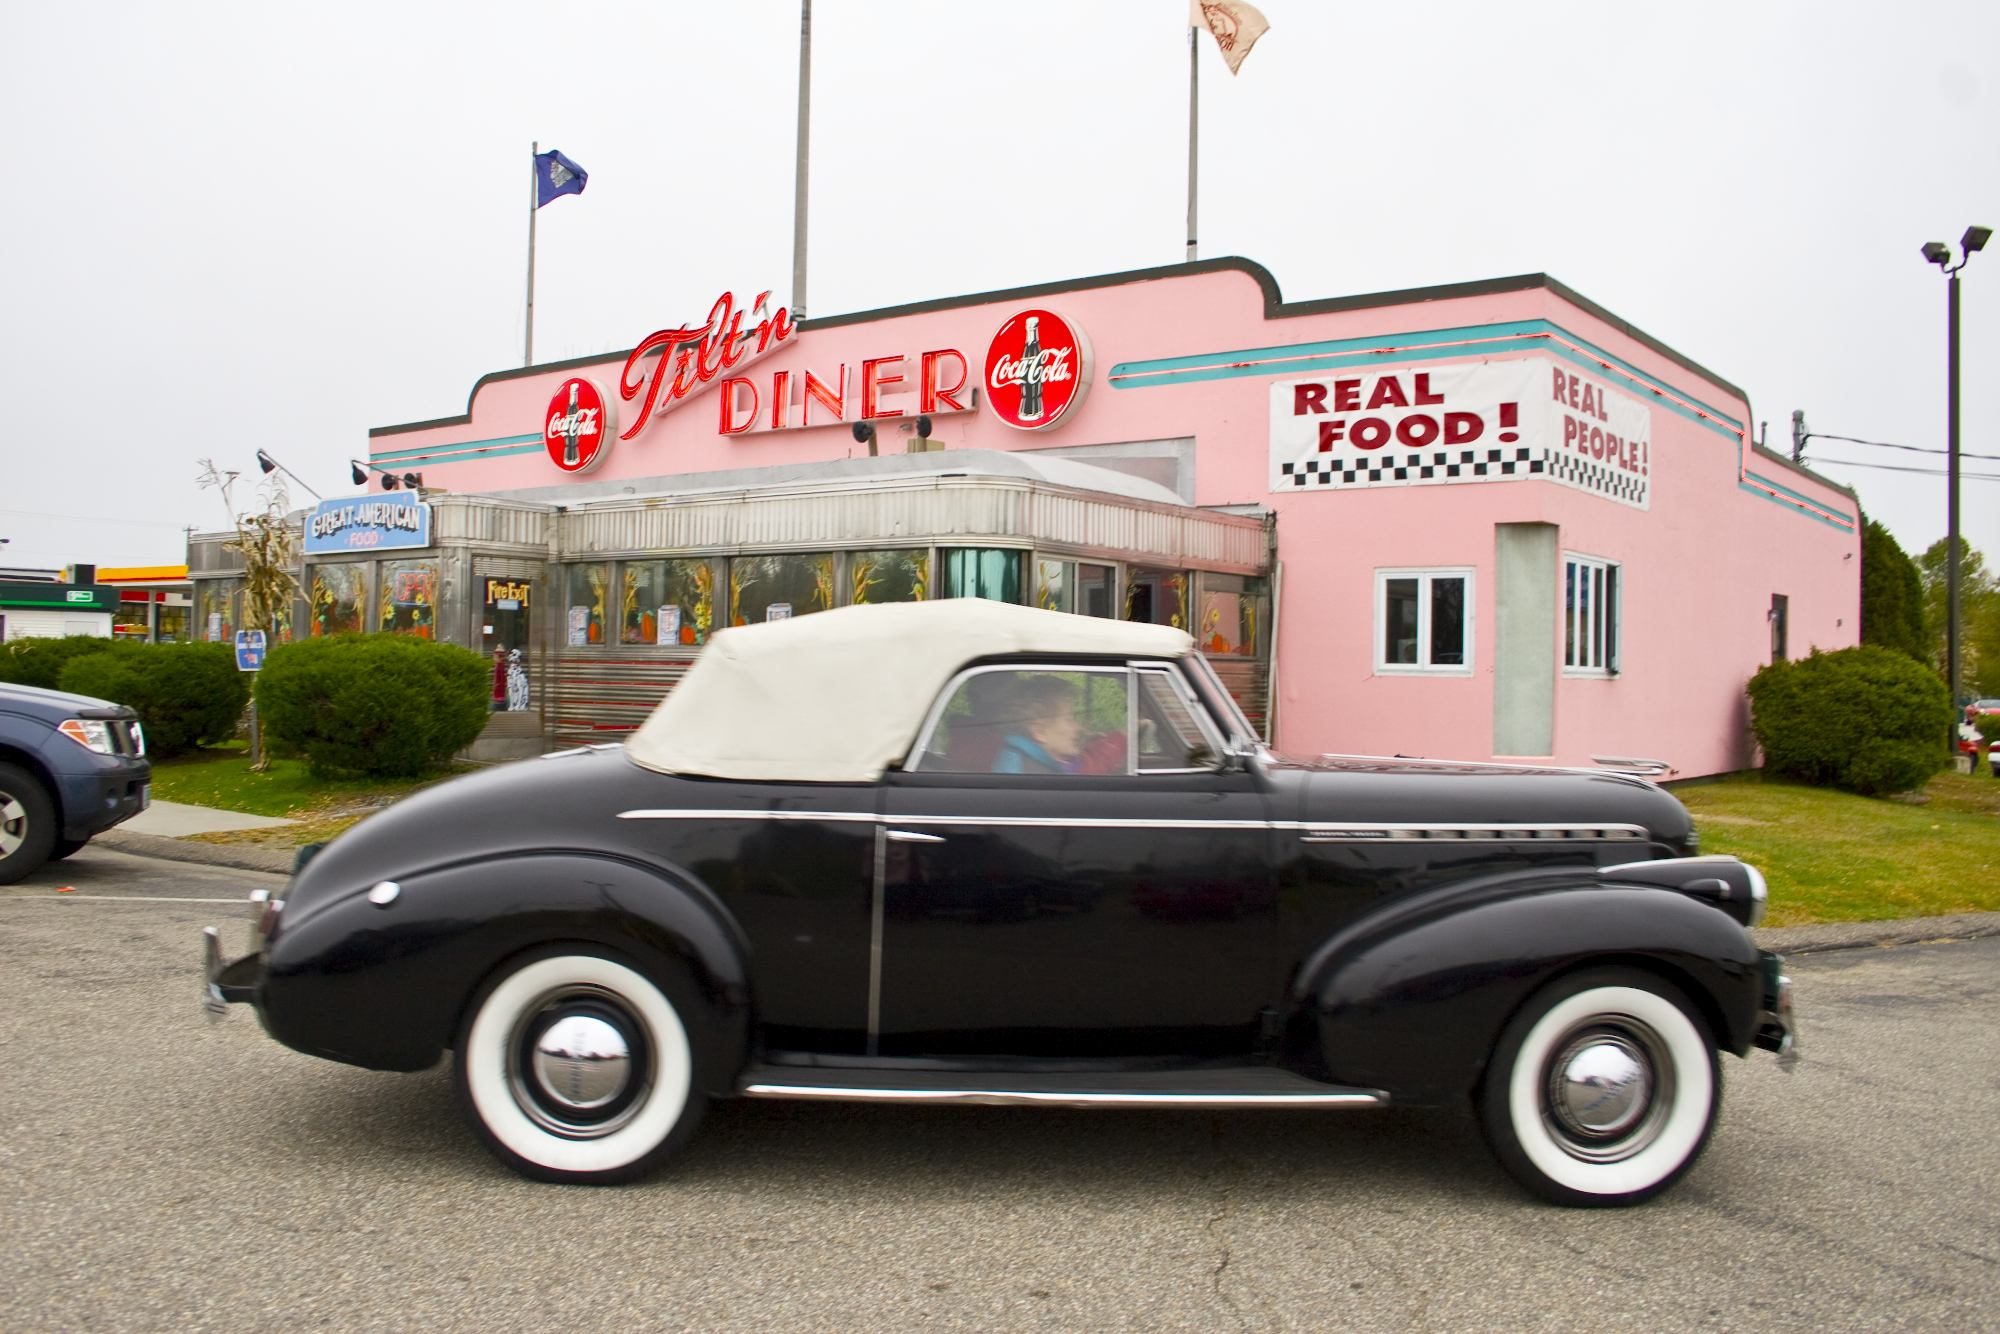 The Best Diners in New England